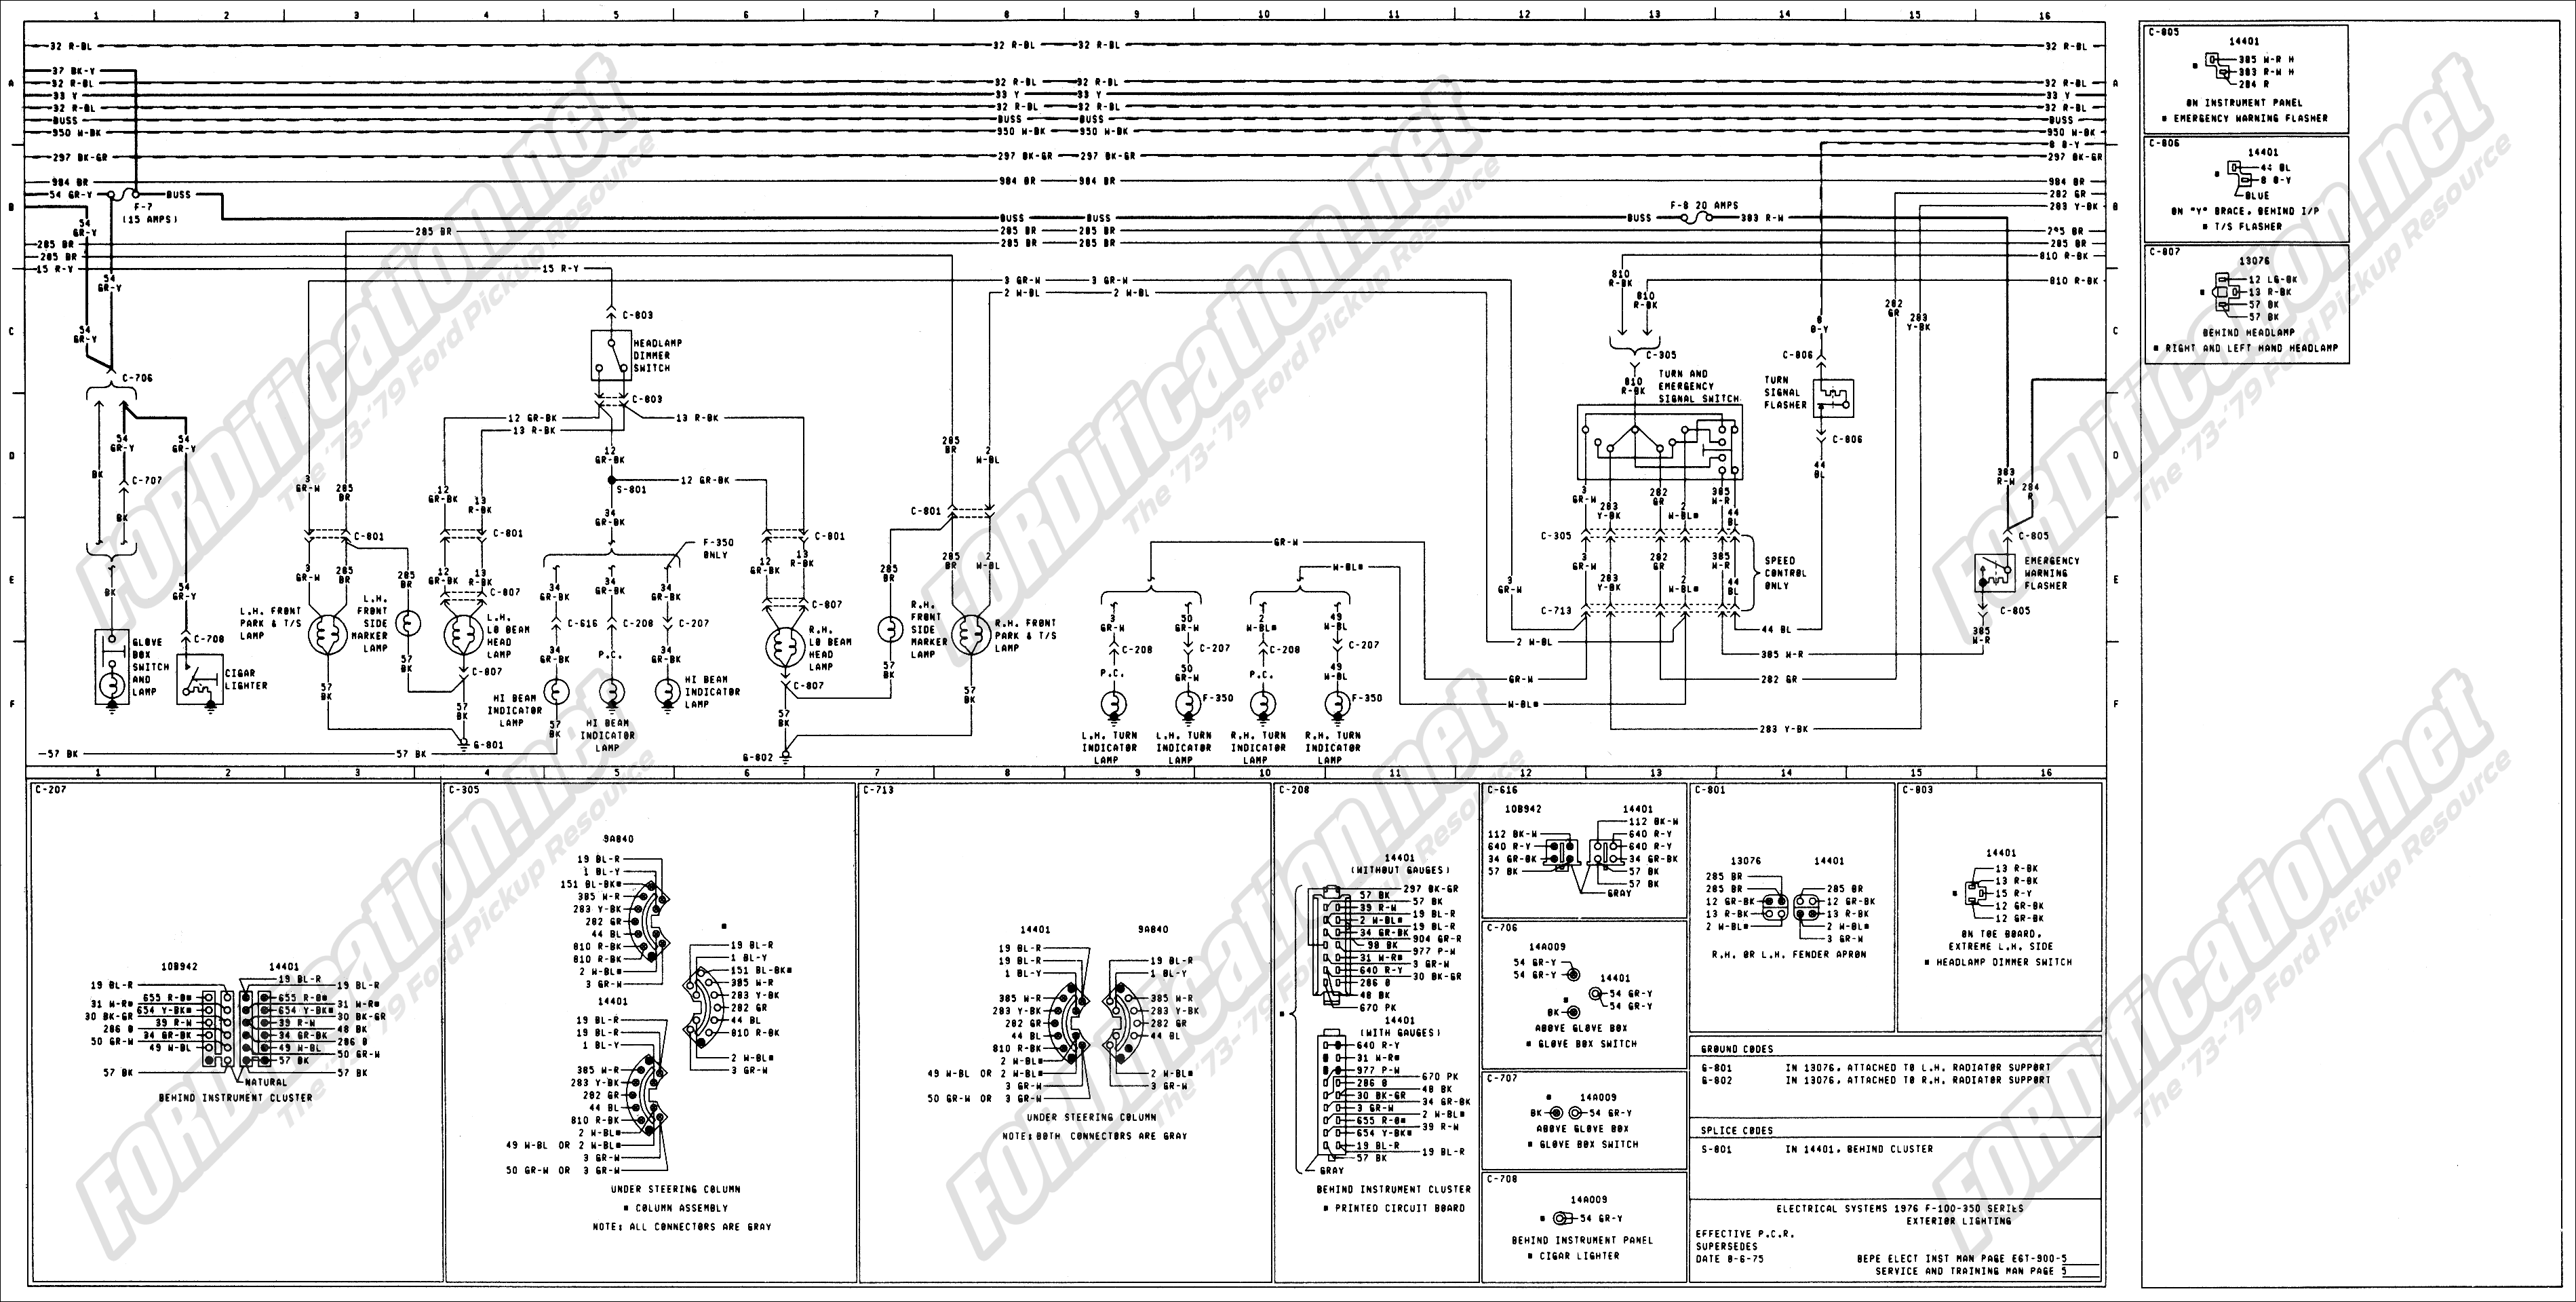 2004 Ford E150 Wiring Diagram Start Building A 250 Econoline Van Fuse Box 2003 Turn Sygnal 2001 F 150 Schematic Rh Theodocle Fion Com E 350